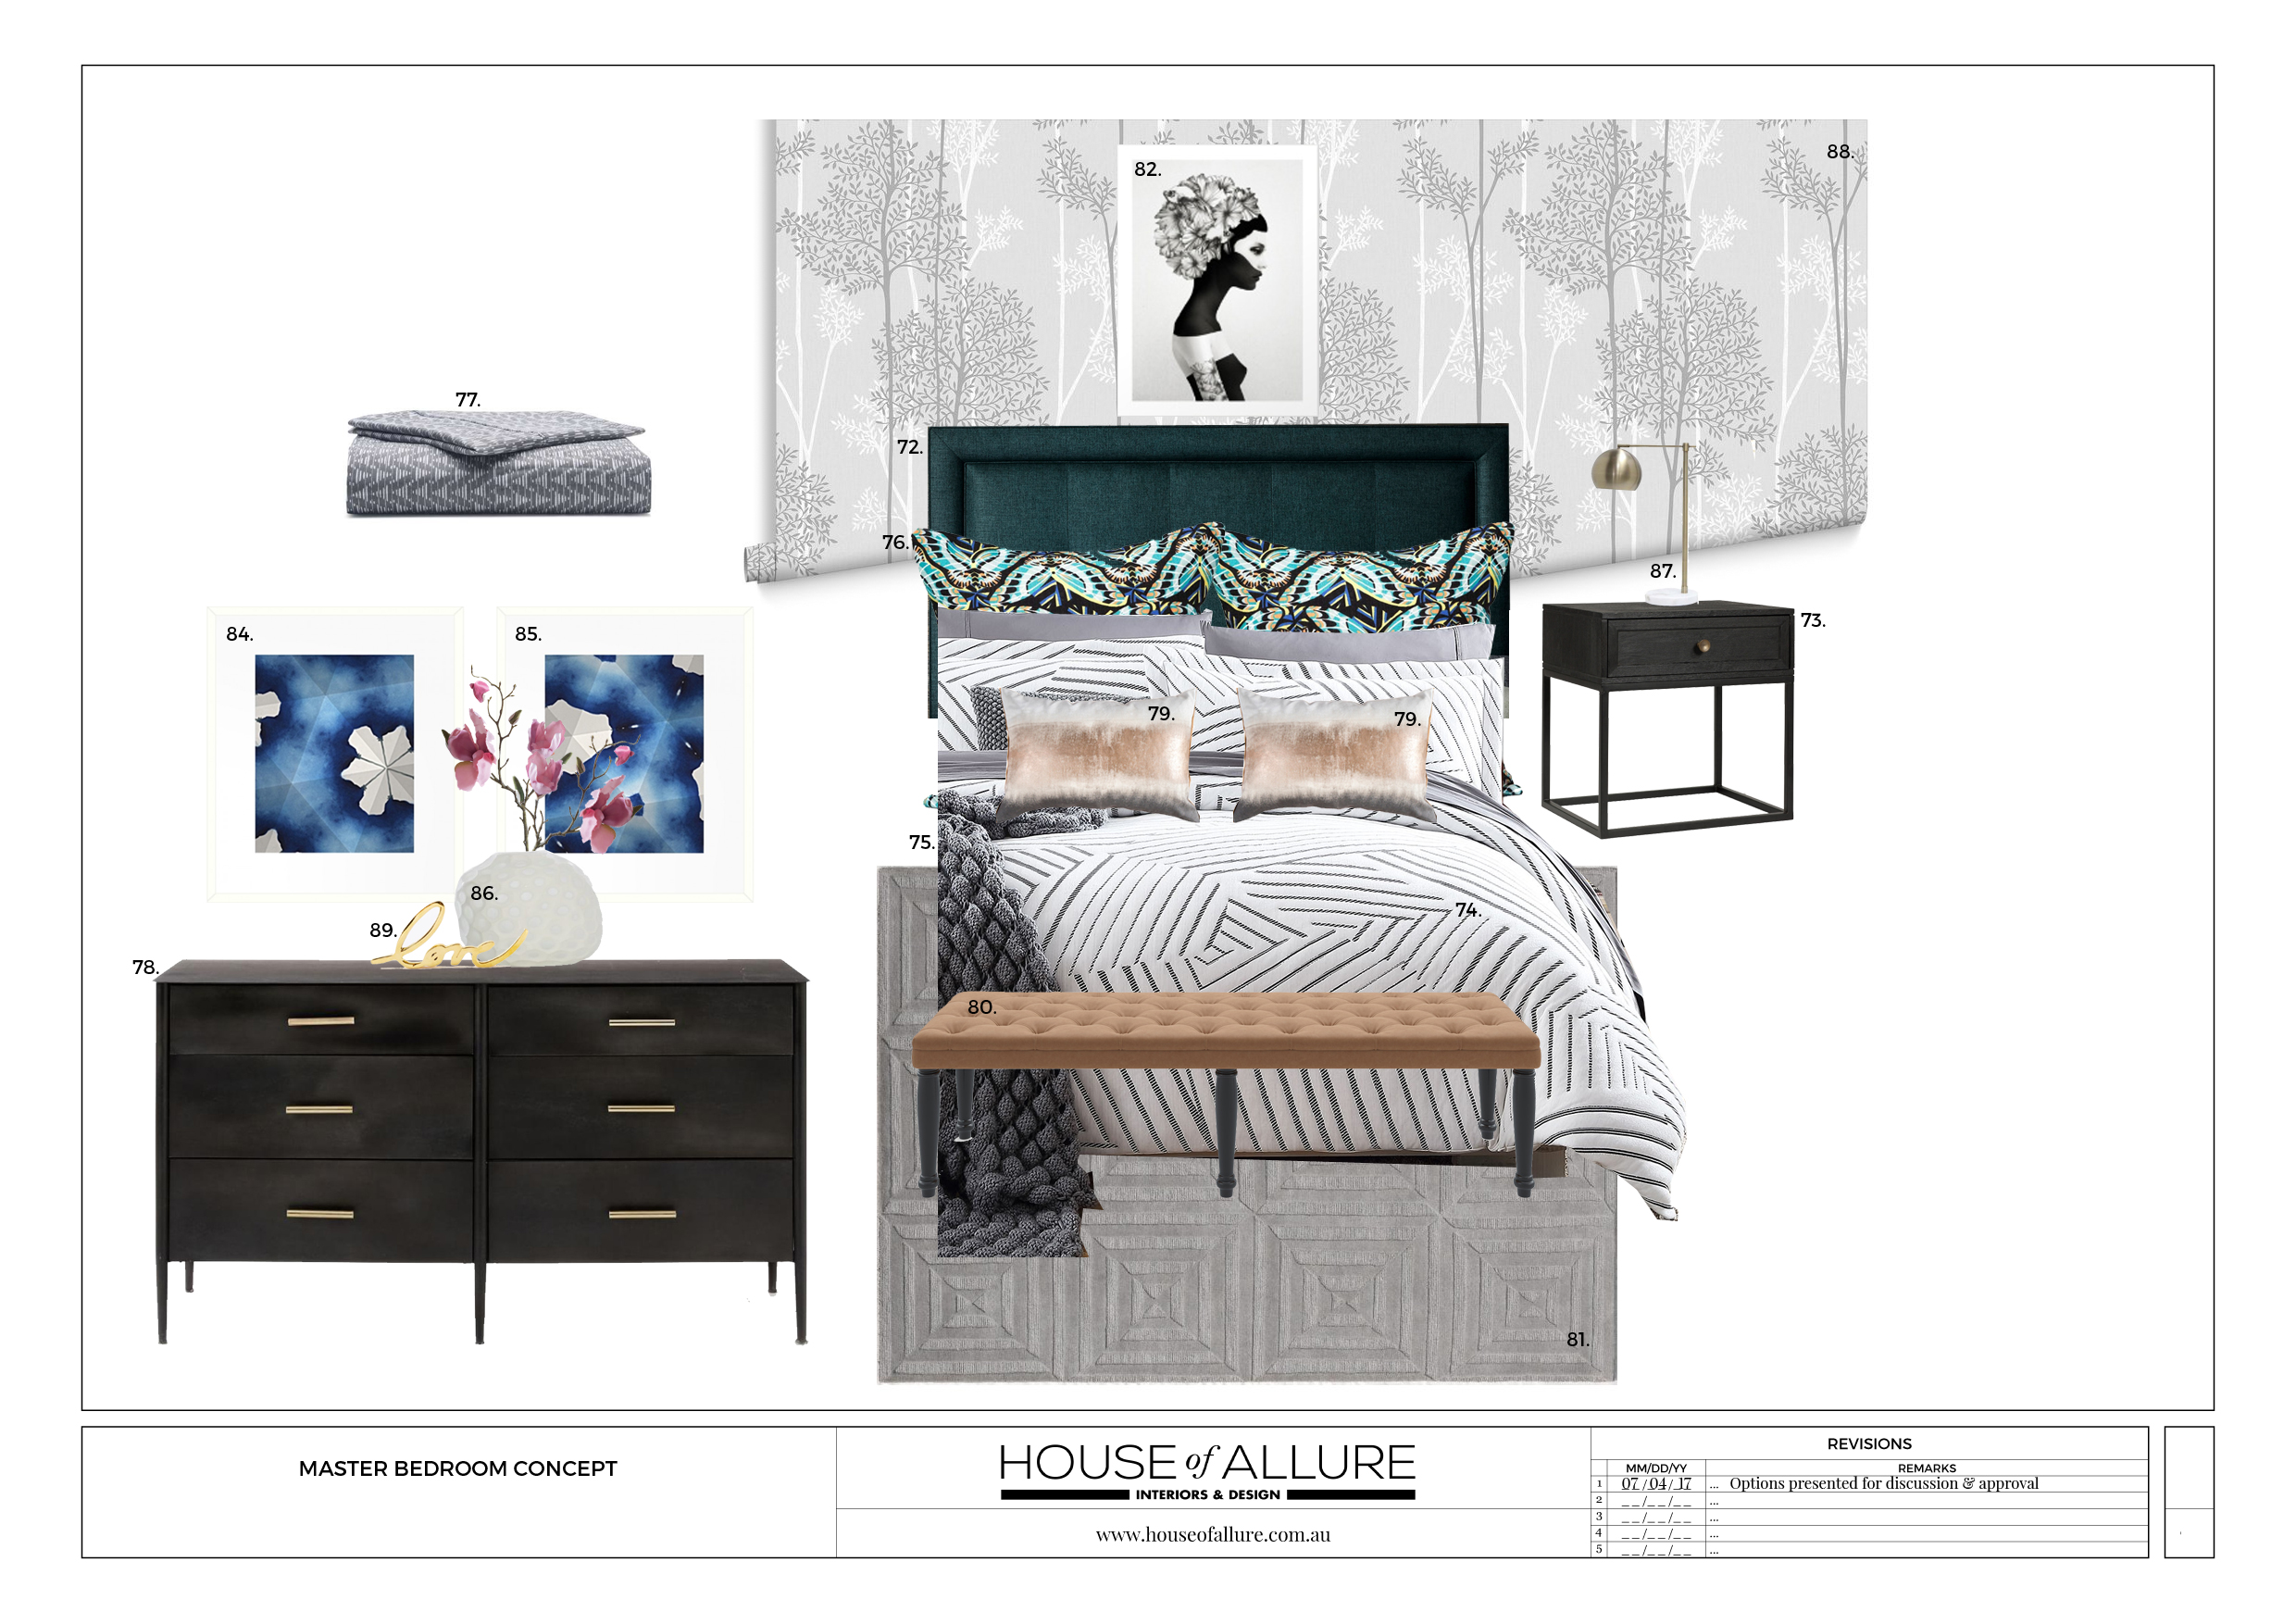 e-decorating for master bedroom